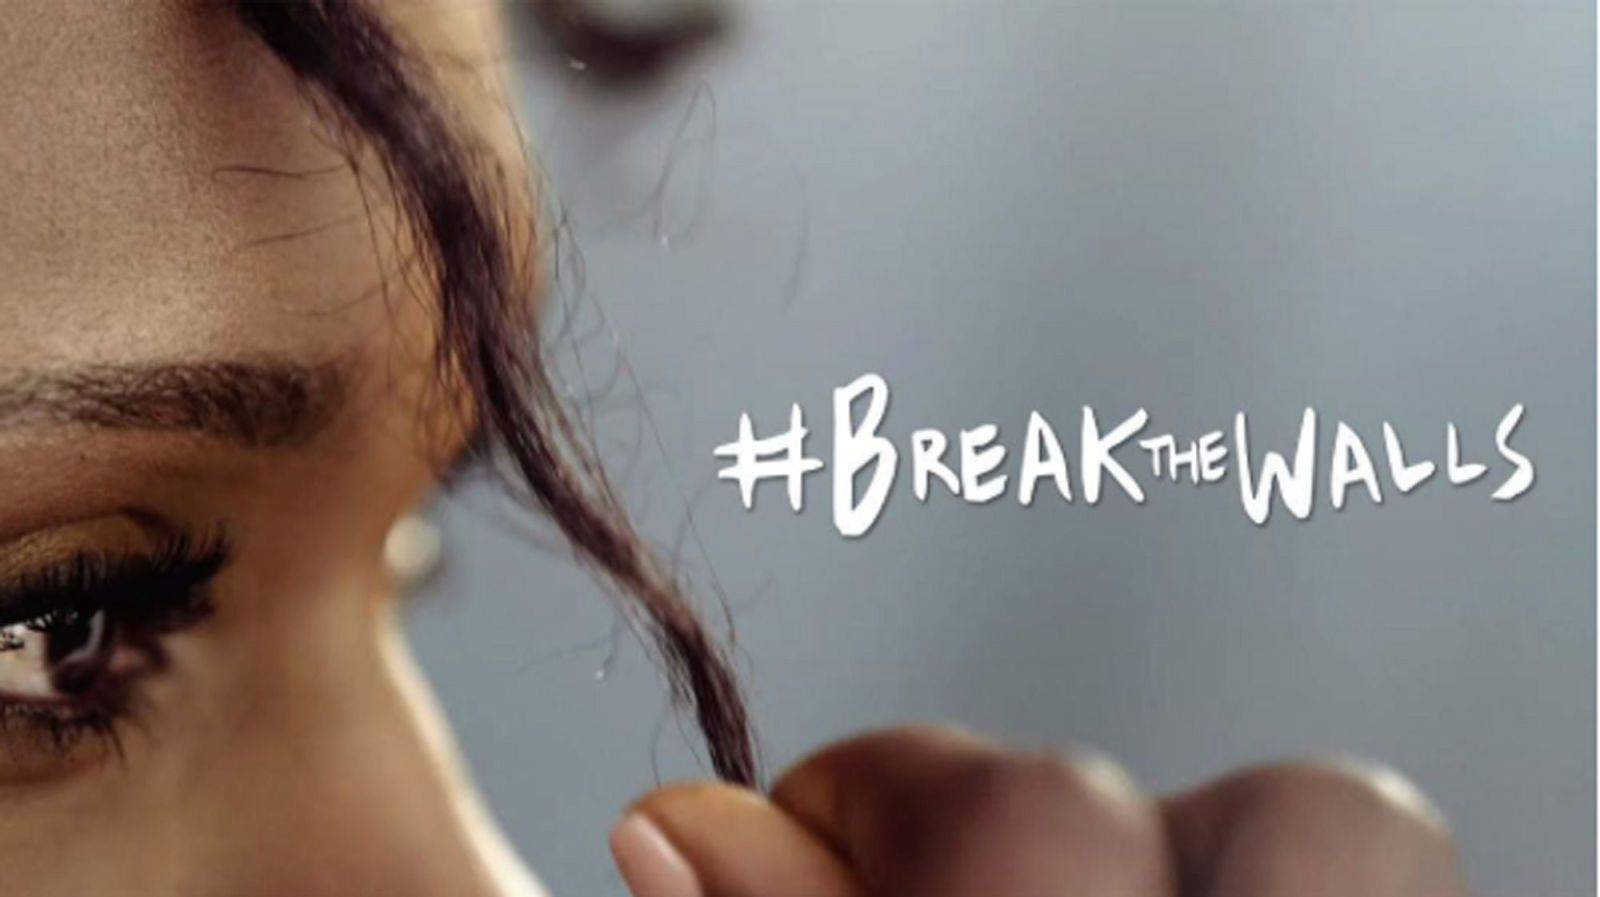 SheaMoisture Launches Campaign Video to Highlight Racial Divides in Beauty Aisles